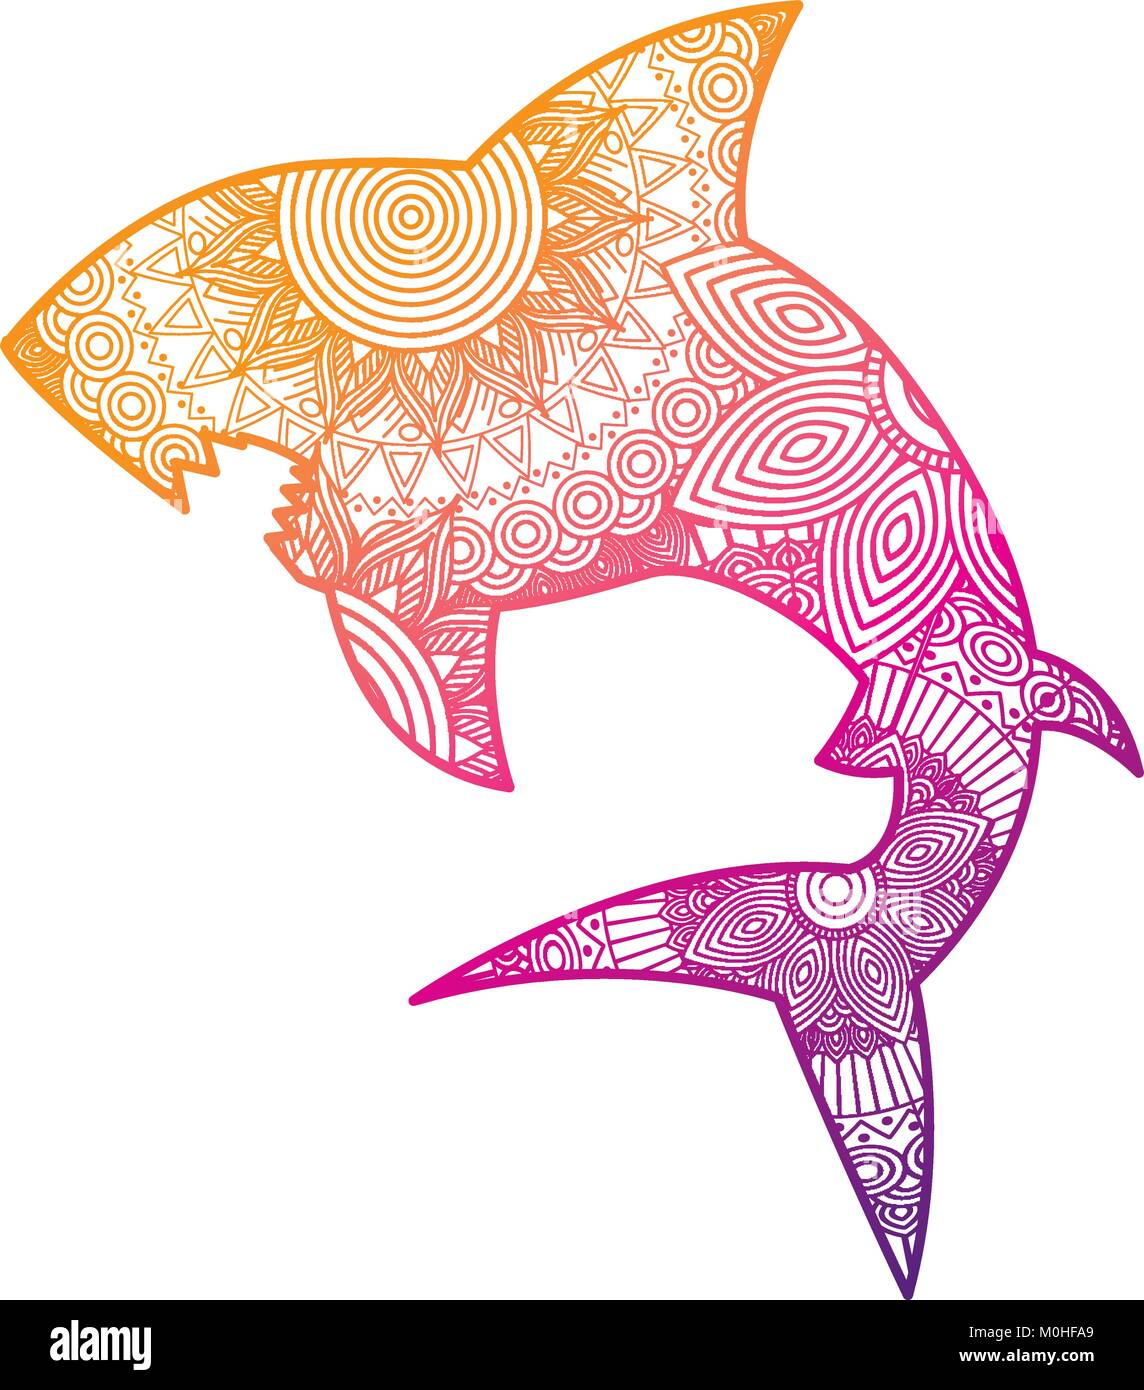 White Page Dolphin Stock Photos & White Page Dolphin Stock Images ...